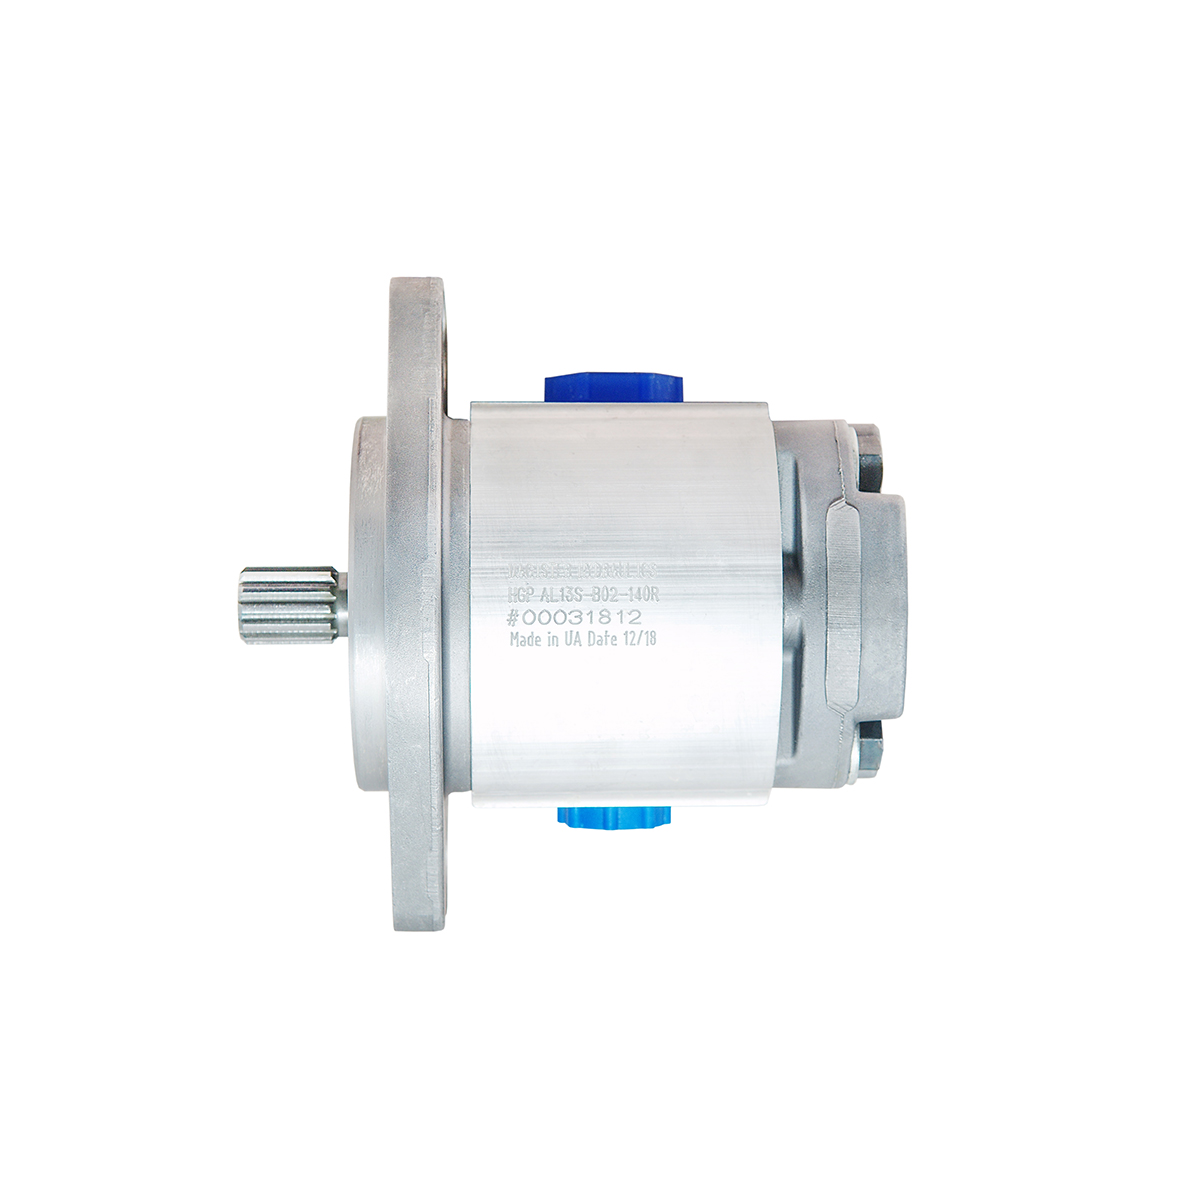 0.38 CID hydraulic gear pump, 9 tooth spline shaft counter-clockwise gear pump | Magister Hydraulics